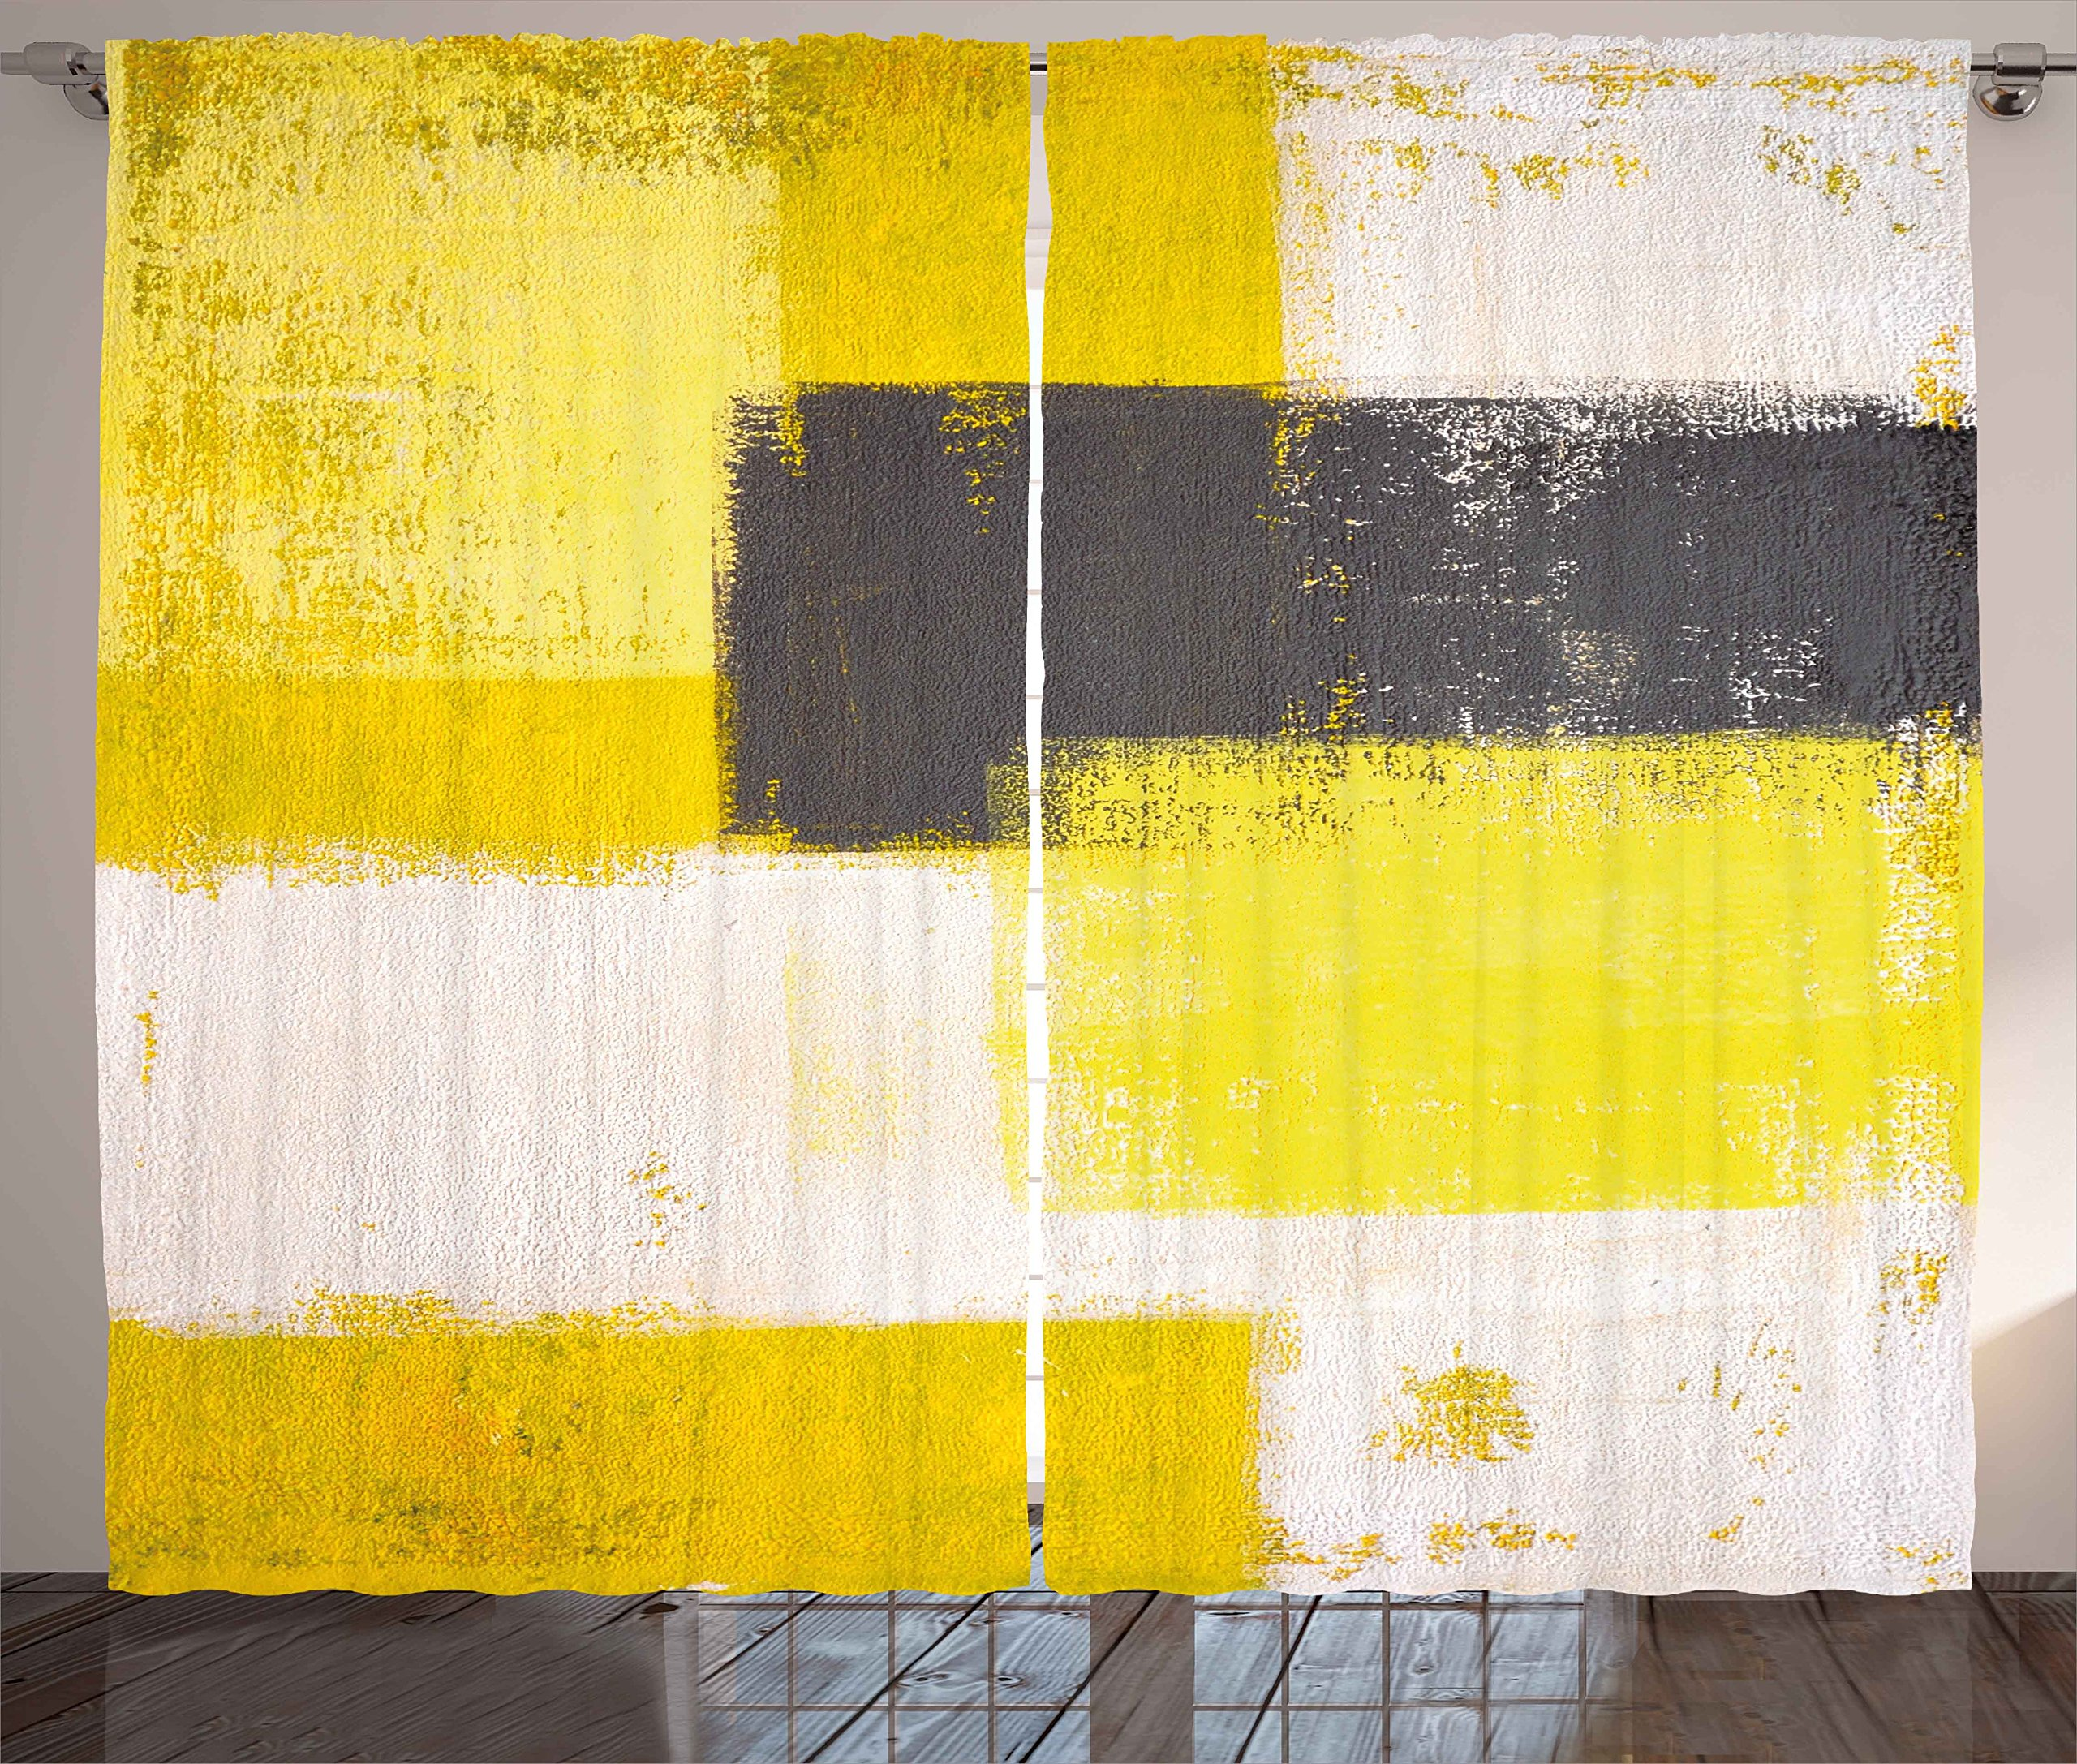 """Ambesonne Grey and Yellow Curtains, Abstract Grunge Style Brushstrokes Painting Style, Living Room Bedroom Window Drapes 2 Panel Set, 108"""" X 84"""", White Charcoal"""